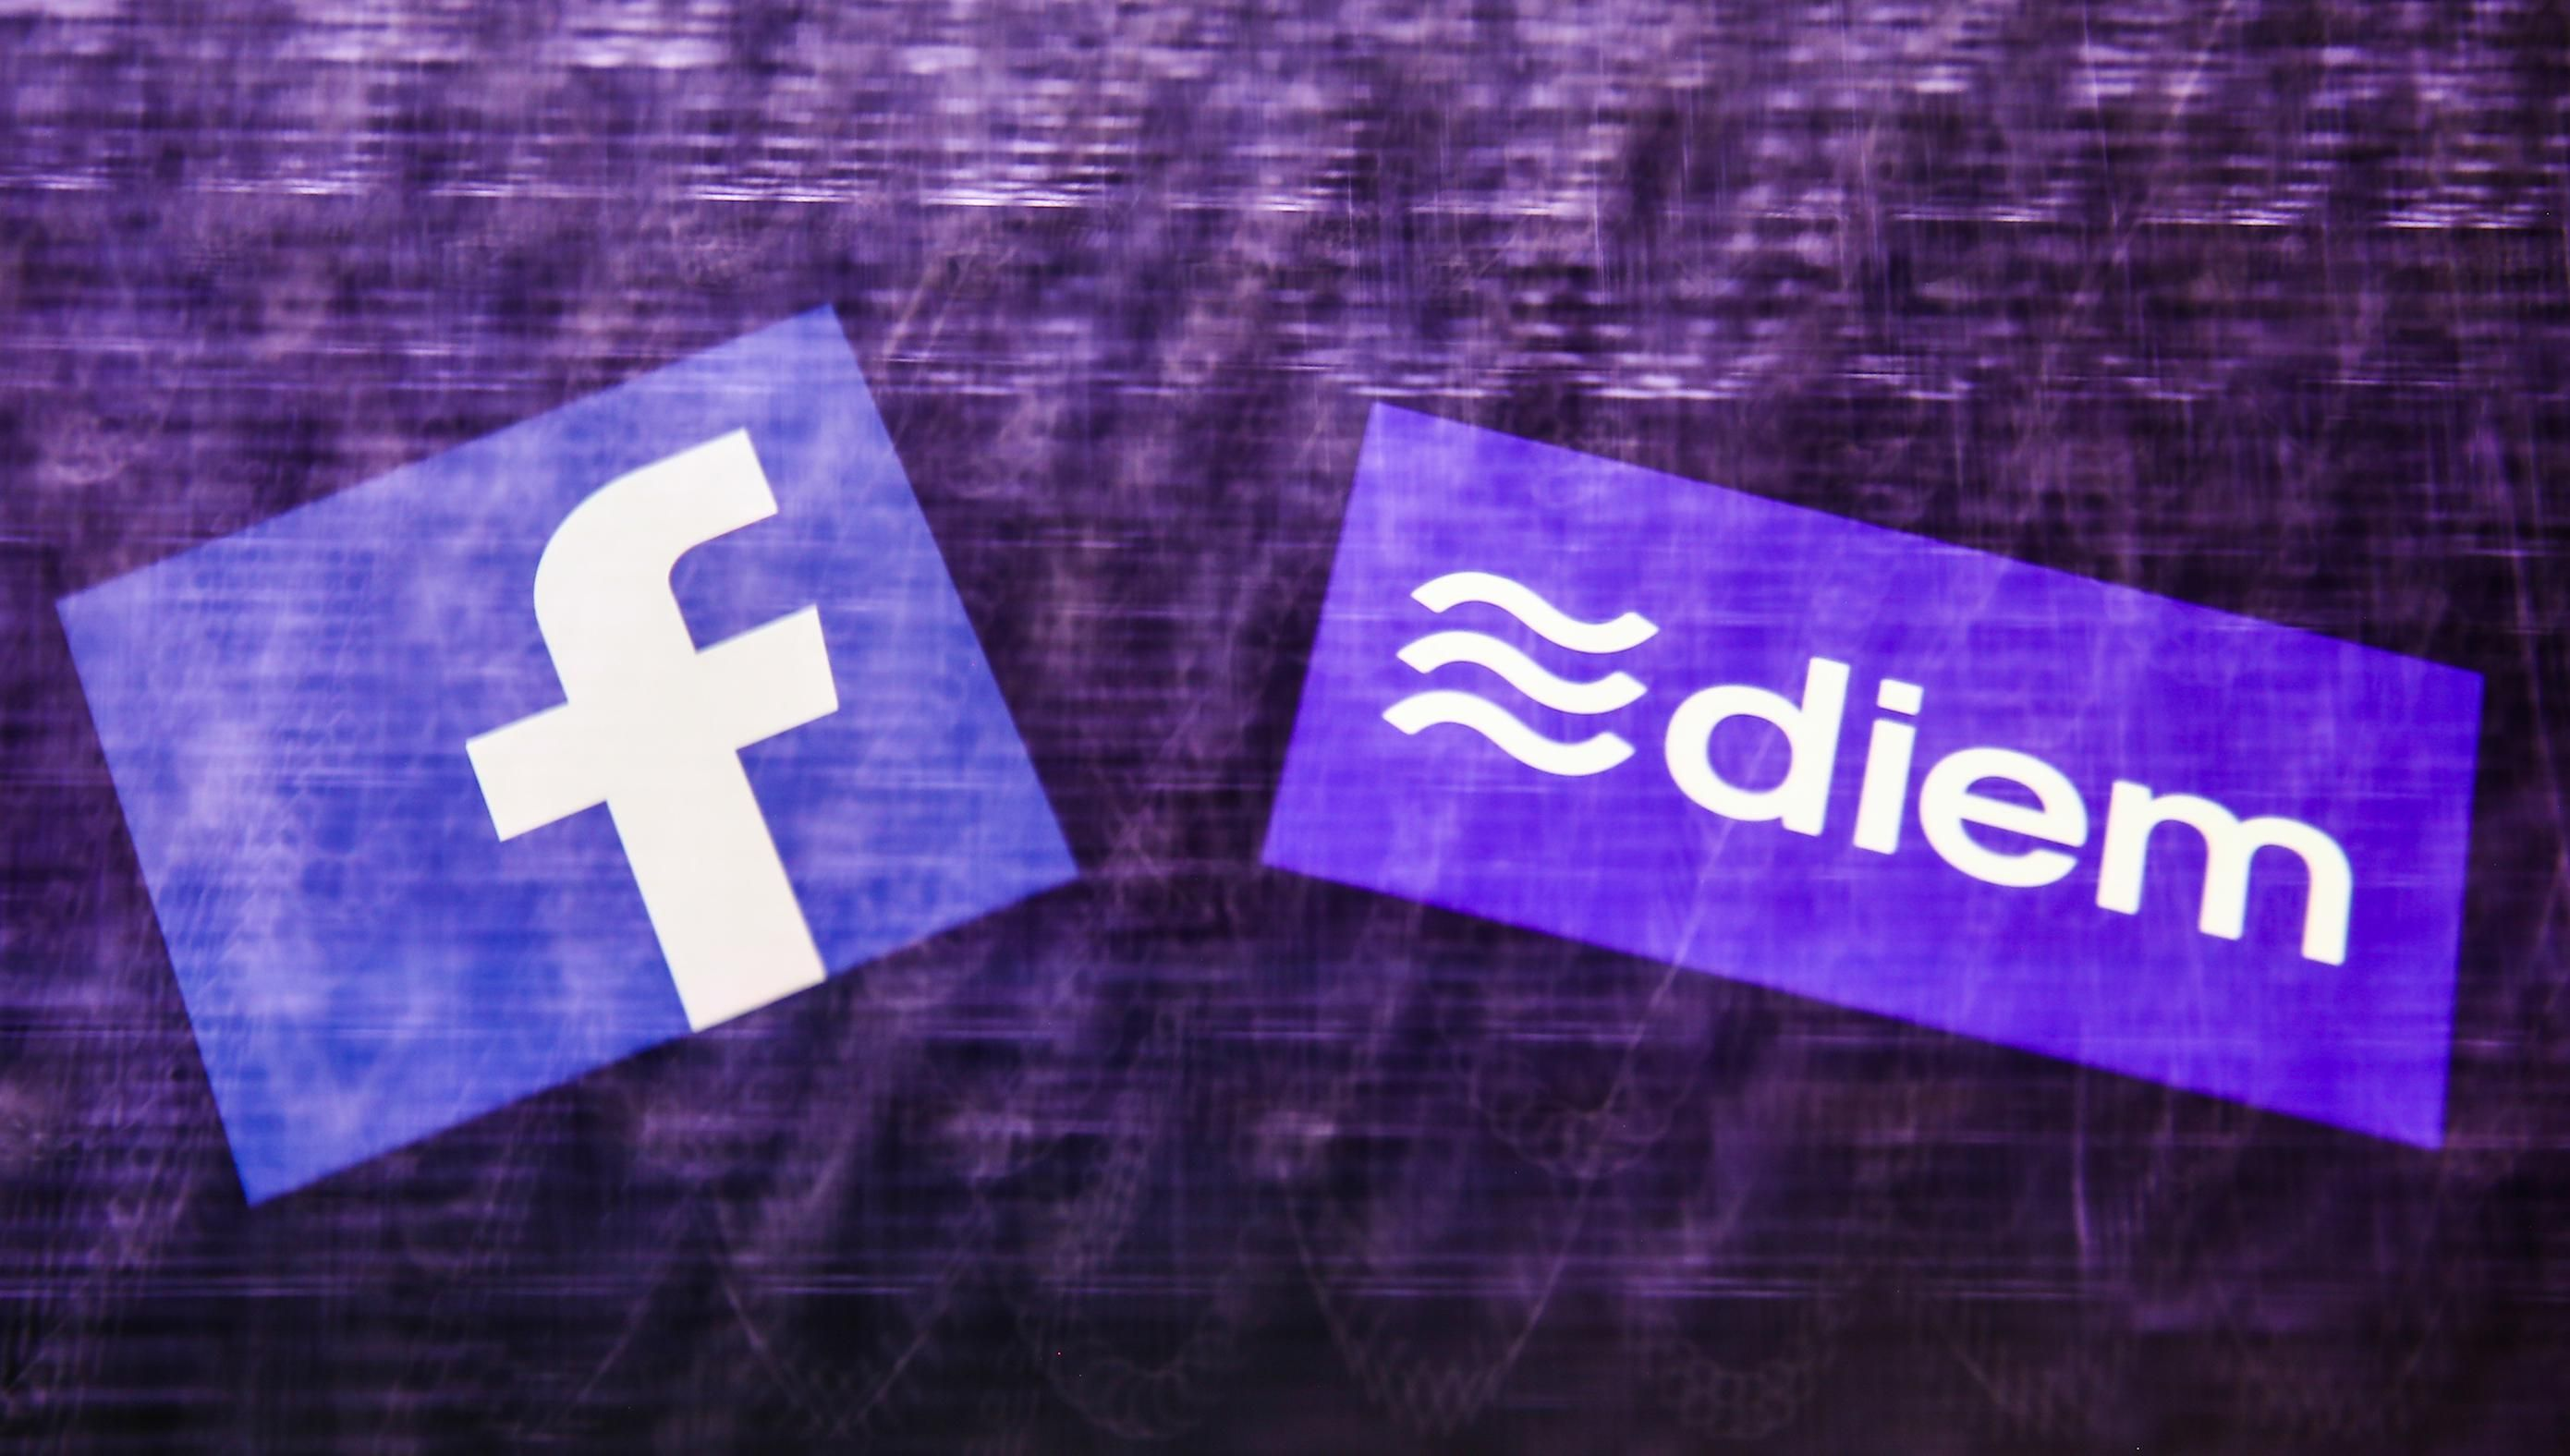 The background is purple and wavy. On the left is Facebooks icon logo. On the right is the icon for Diem.